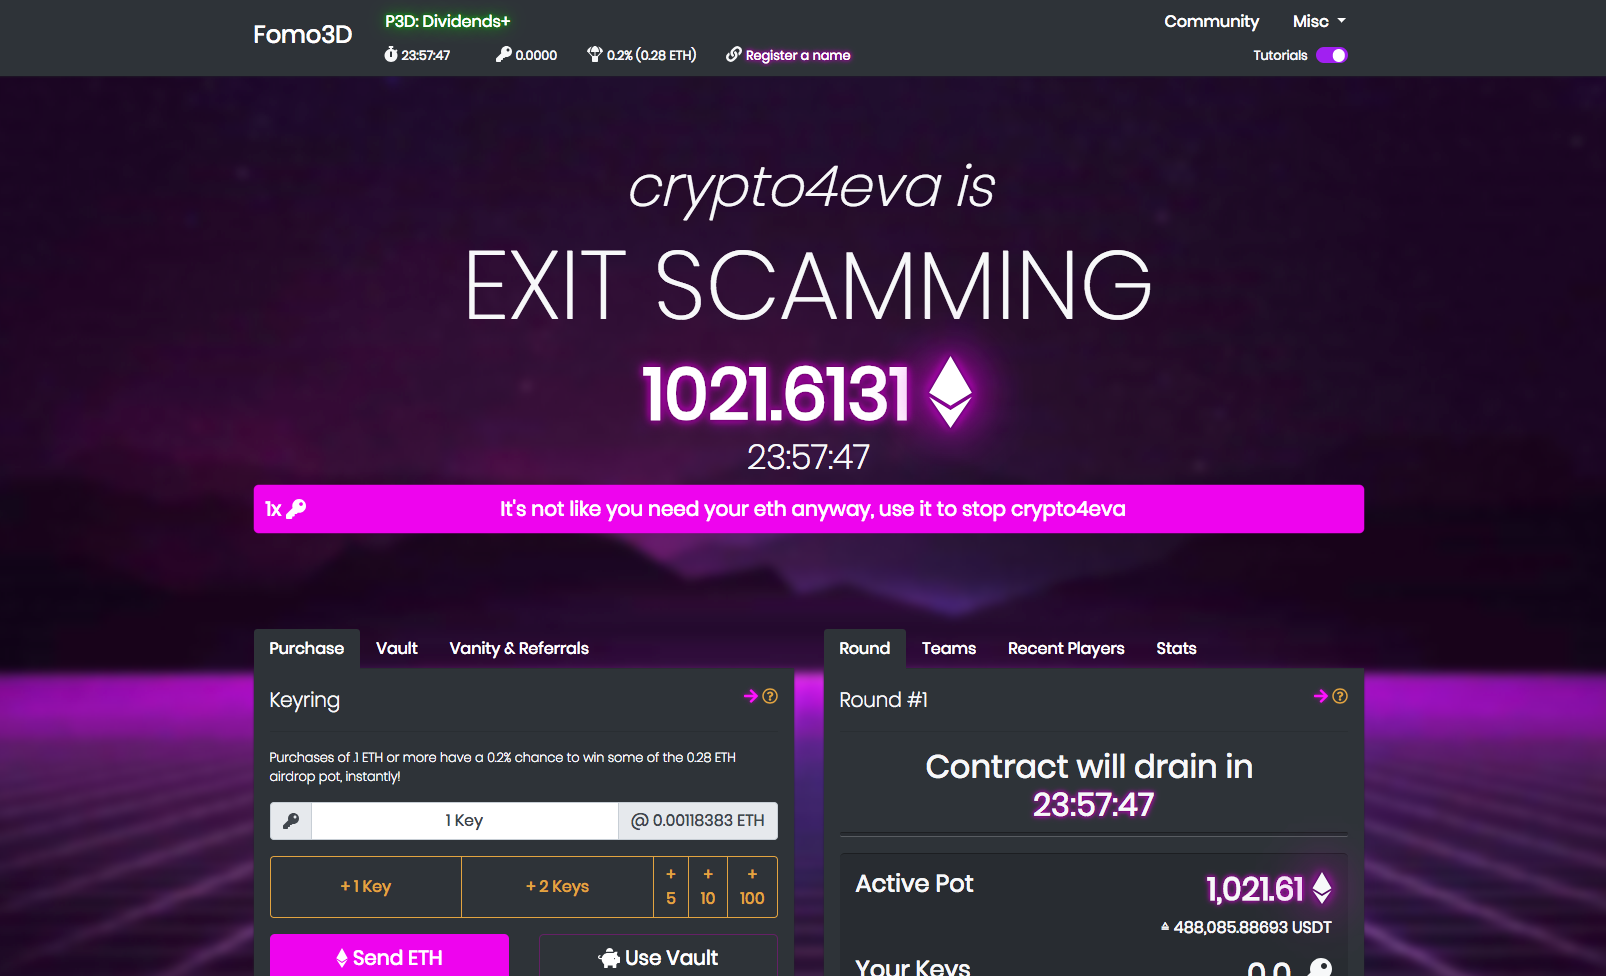 Fomo3D's current pool holds around 1022 ETH (around $488k) and expires in 24h (Screenshot from Website)